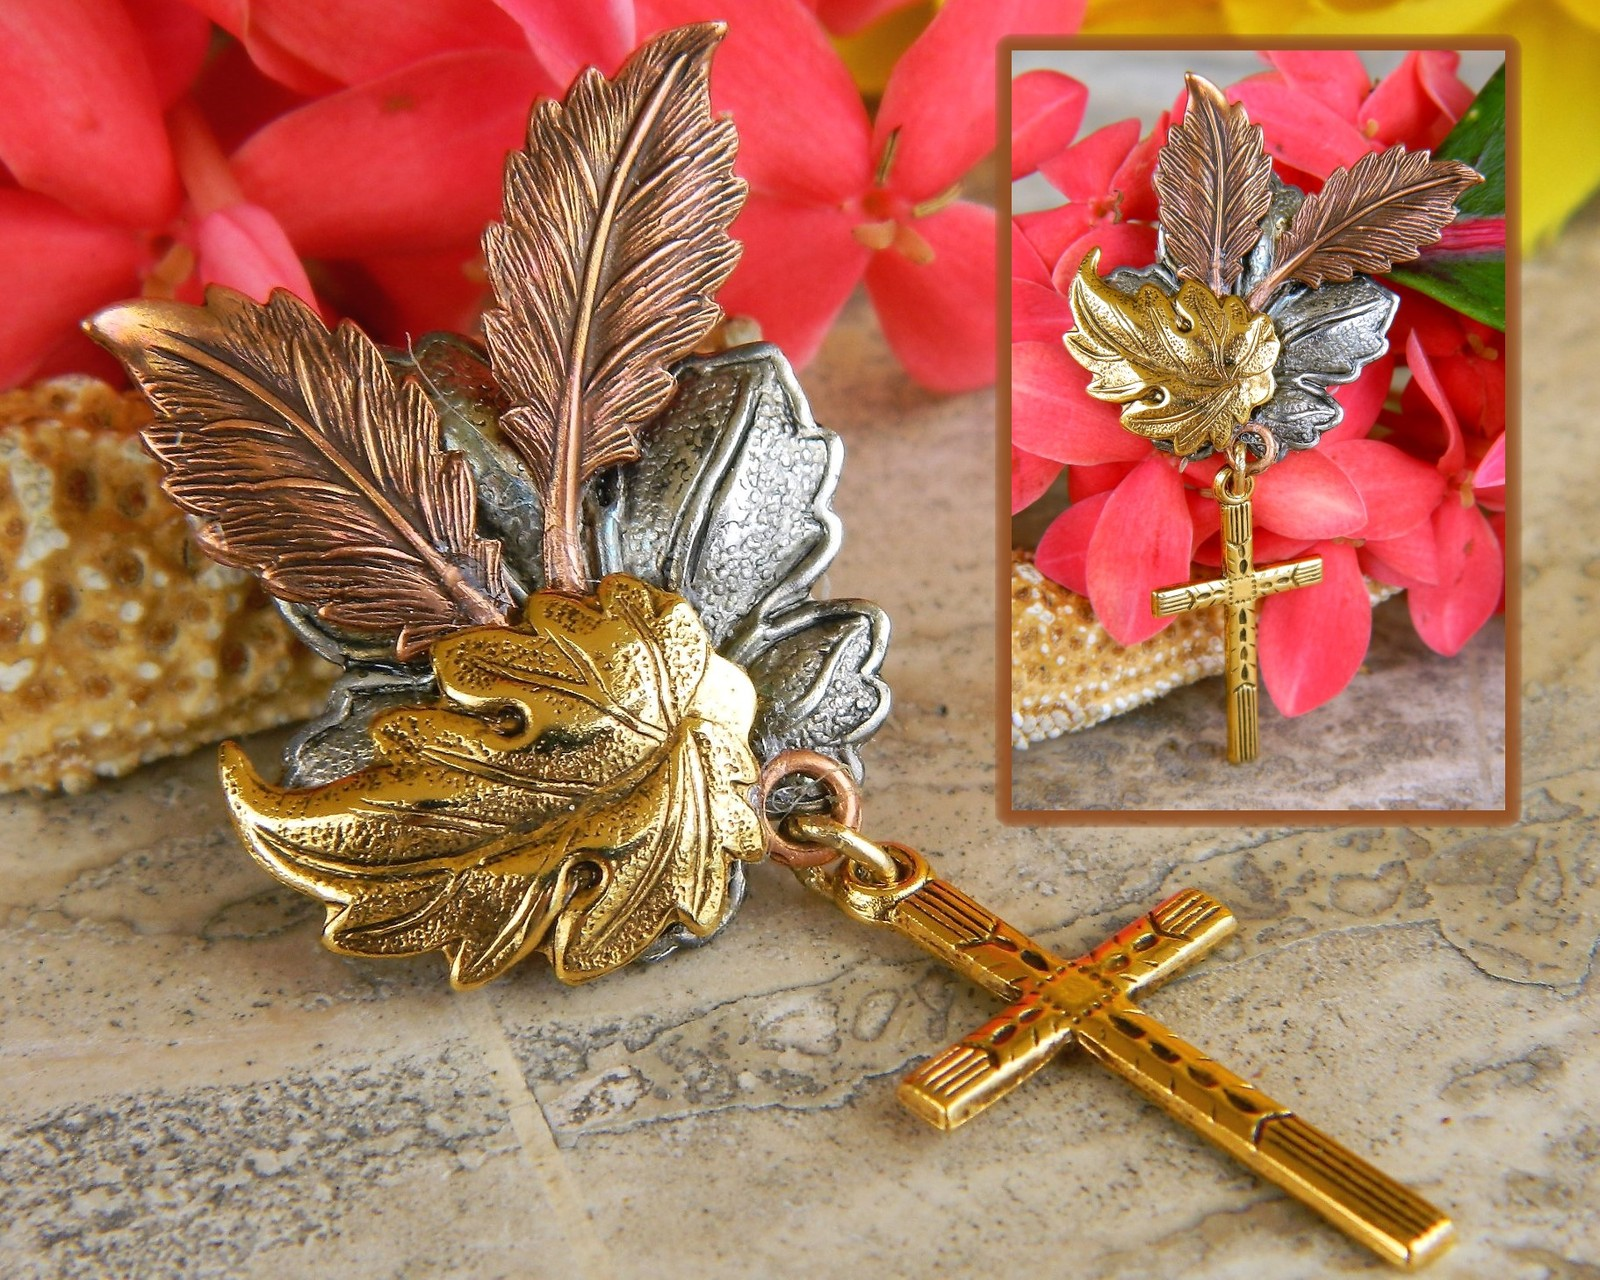 Maple Oak Leaves Cross Brooch Pin Tri Color Textured Metal Figural image 4